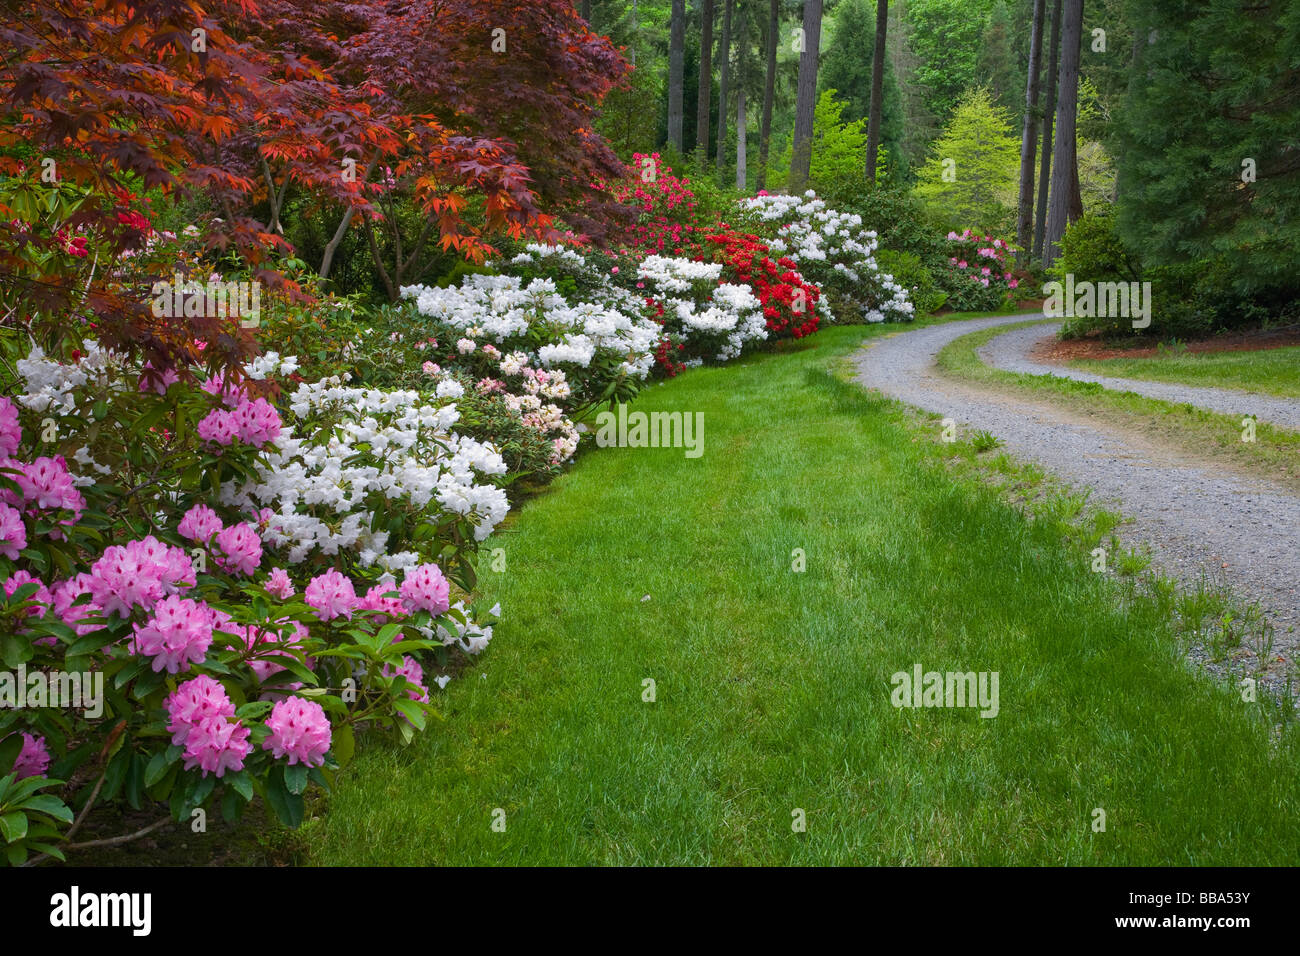 Pacific Northwest garden featuring maples and flowering rhododendron along a curving driveway on Vashon Island, - Stock Image